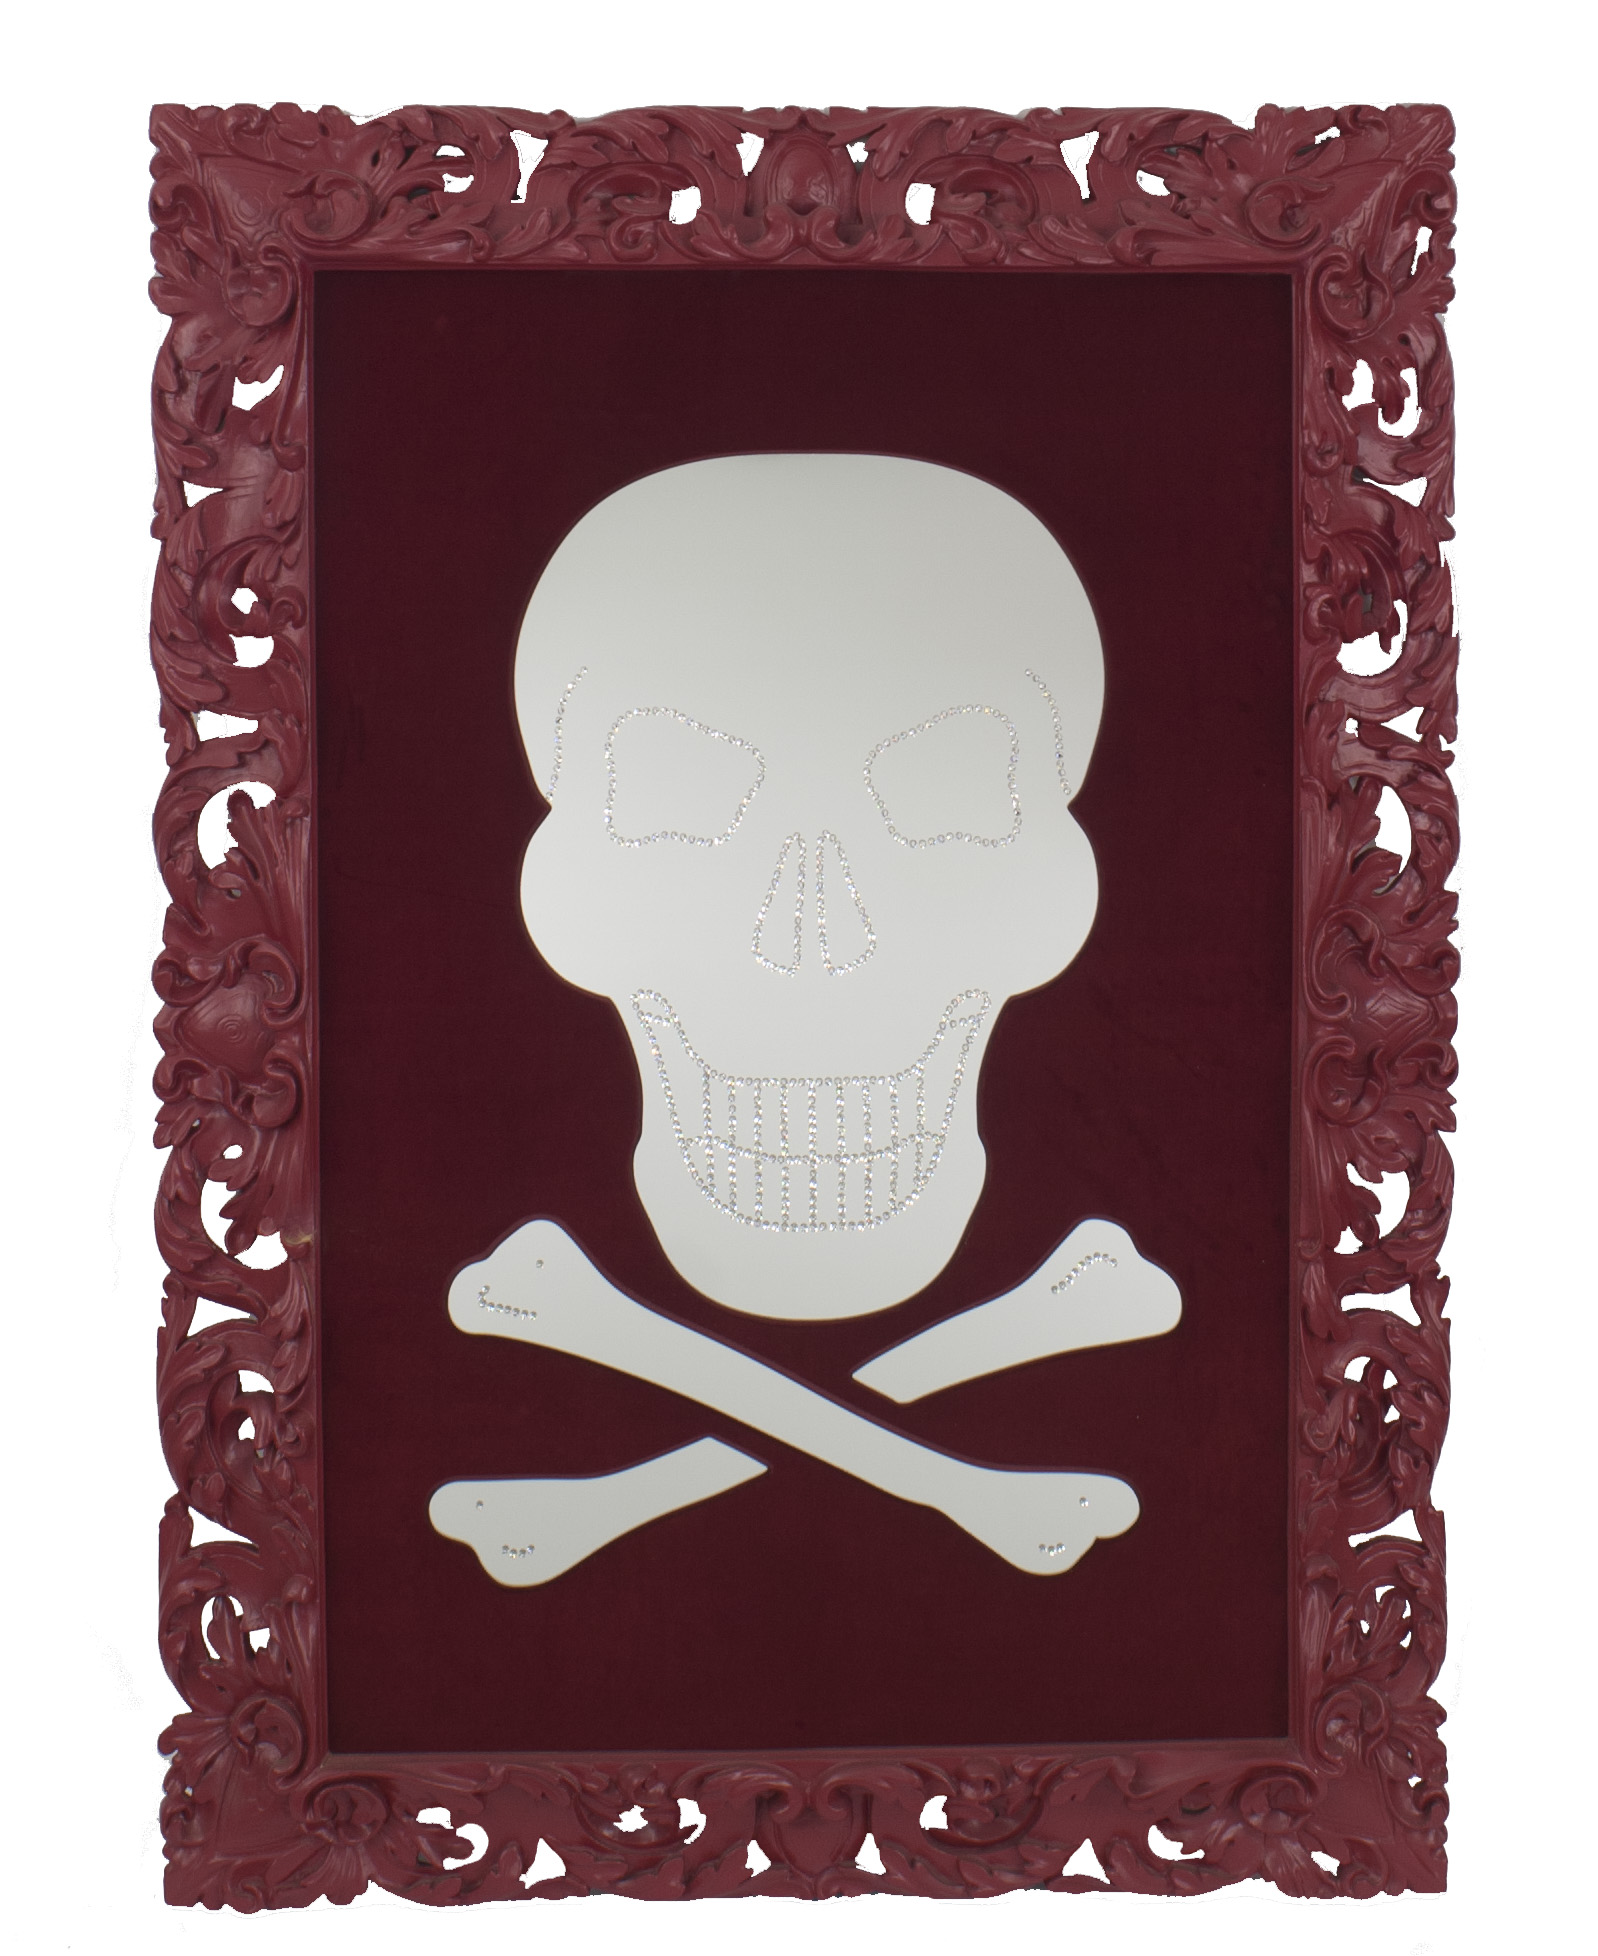 e51a945cf7d4 Contemporary (Swarovski crystals) wall mirror with skull   crossbone ...